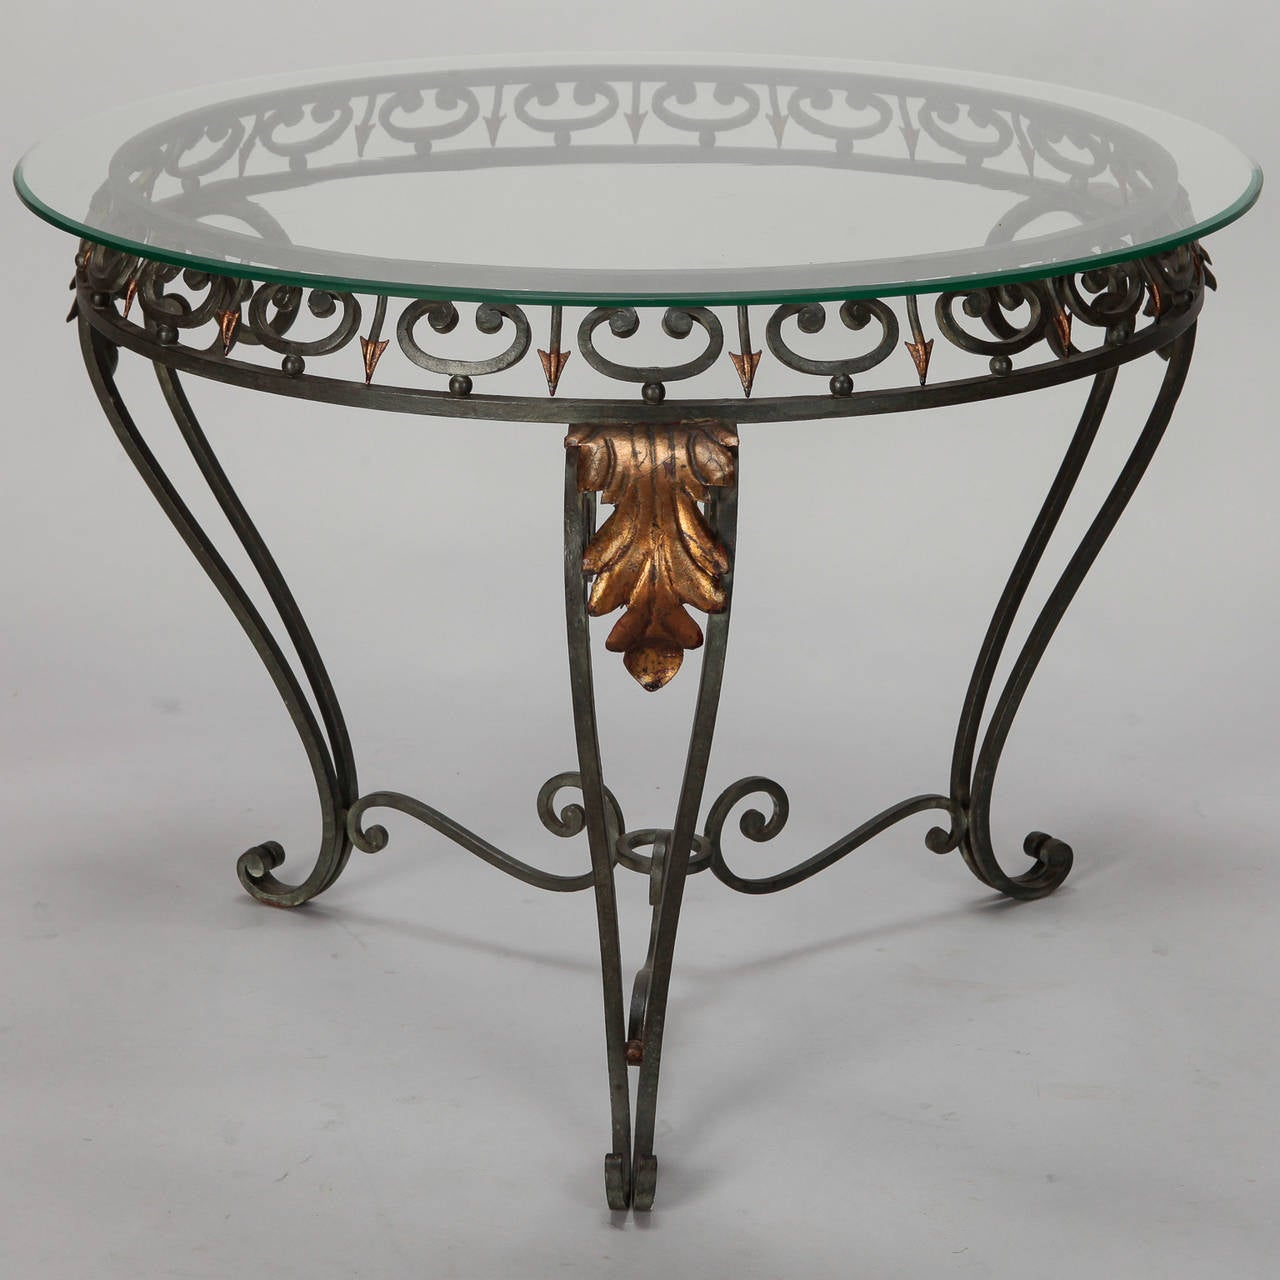 Glastisch Metallgestell Italian Glass Top Table With Green Iron Frame And Gilt